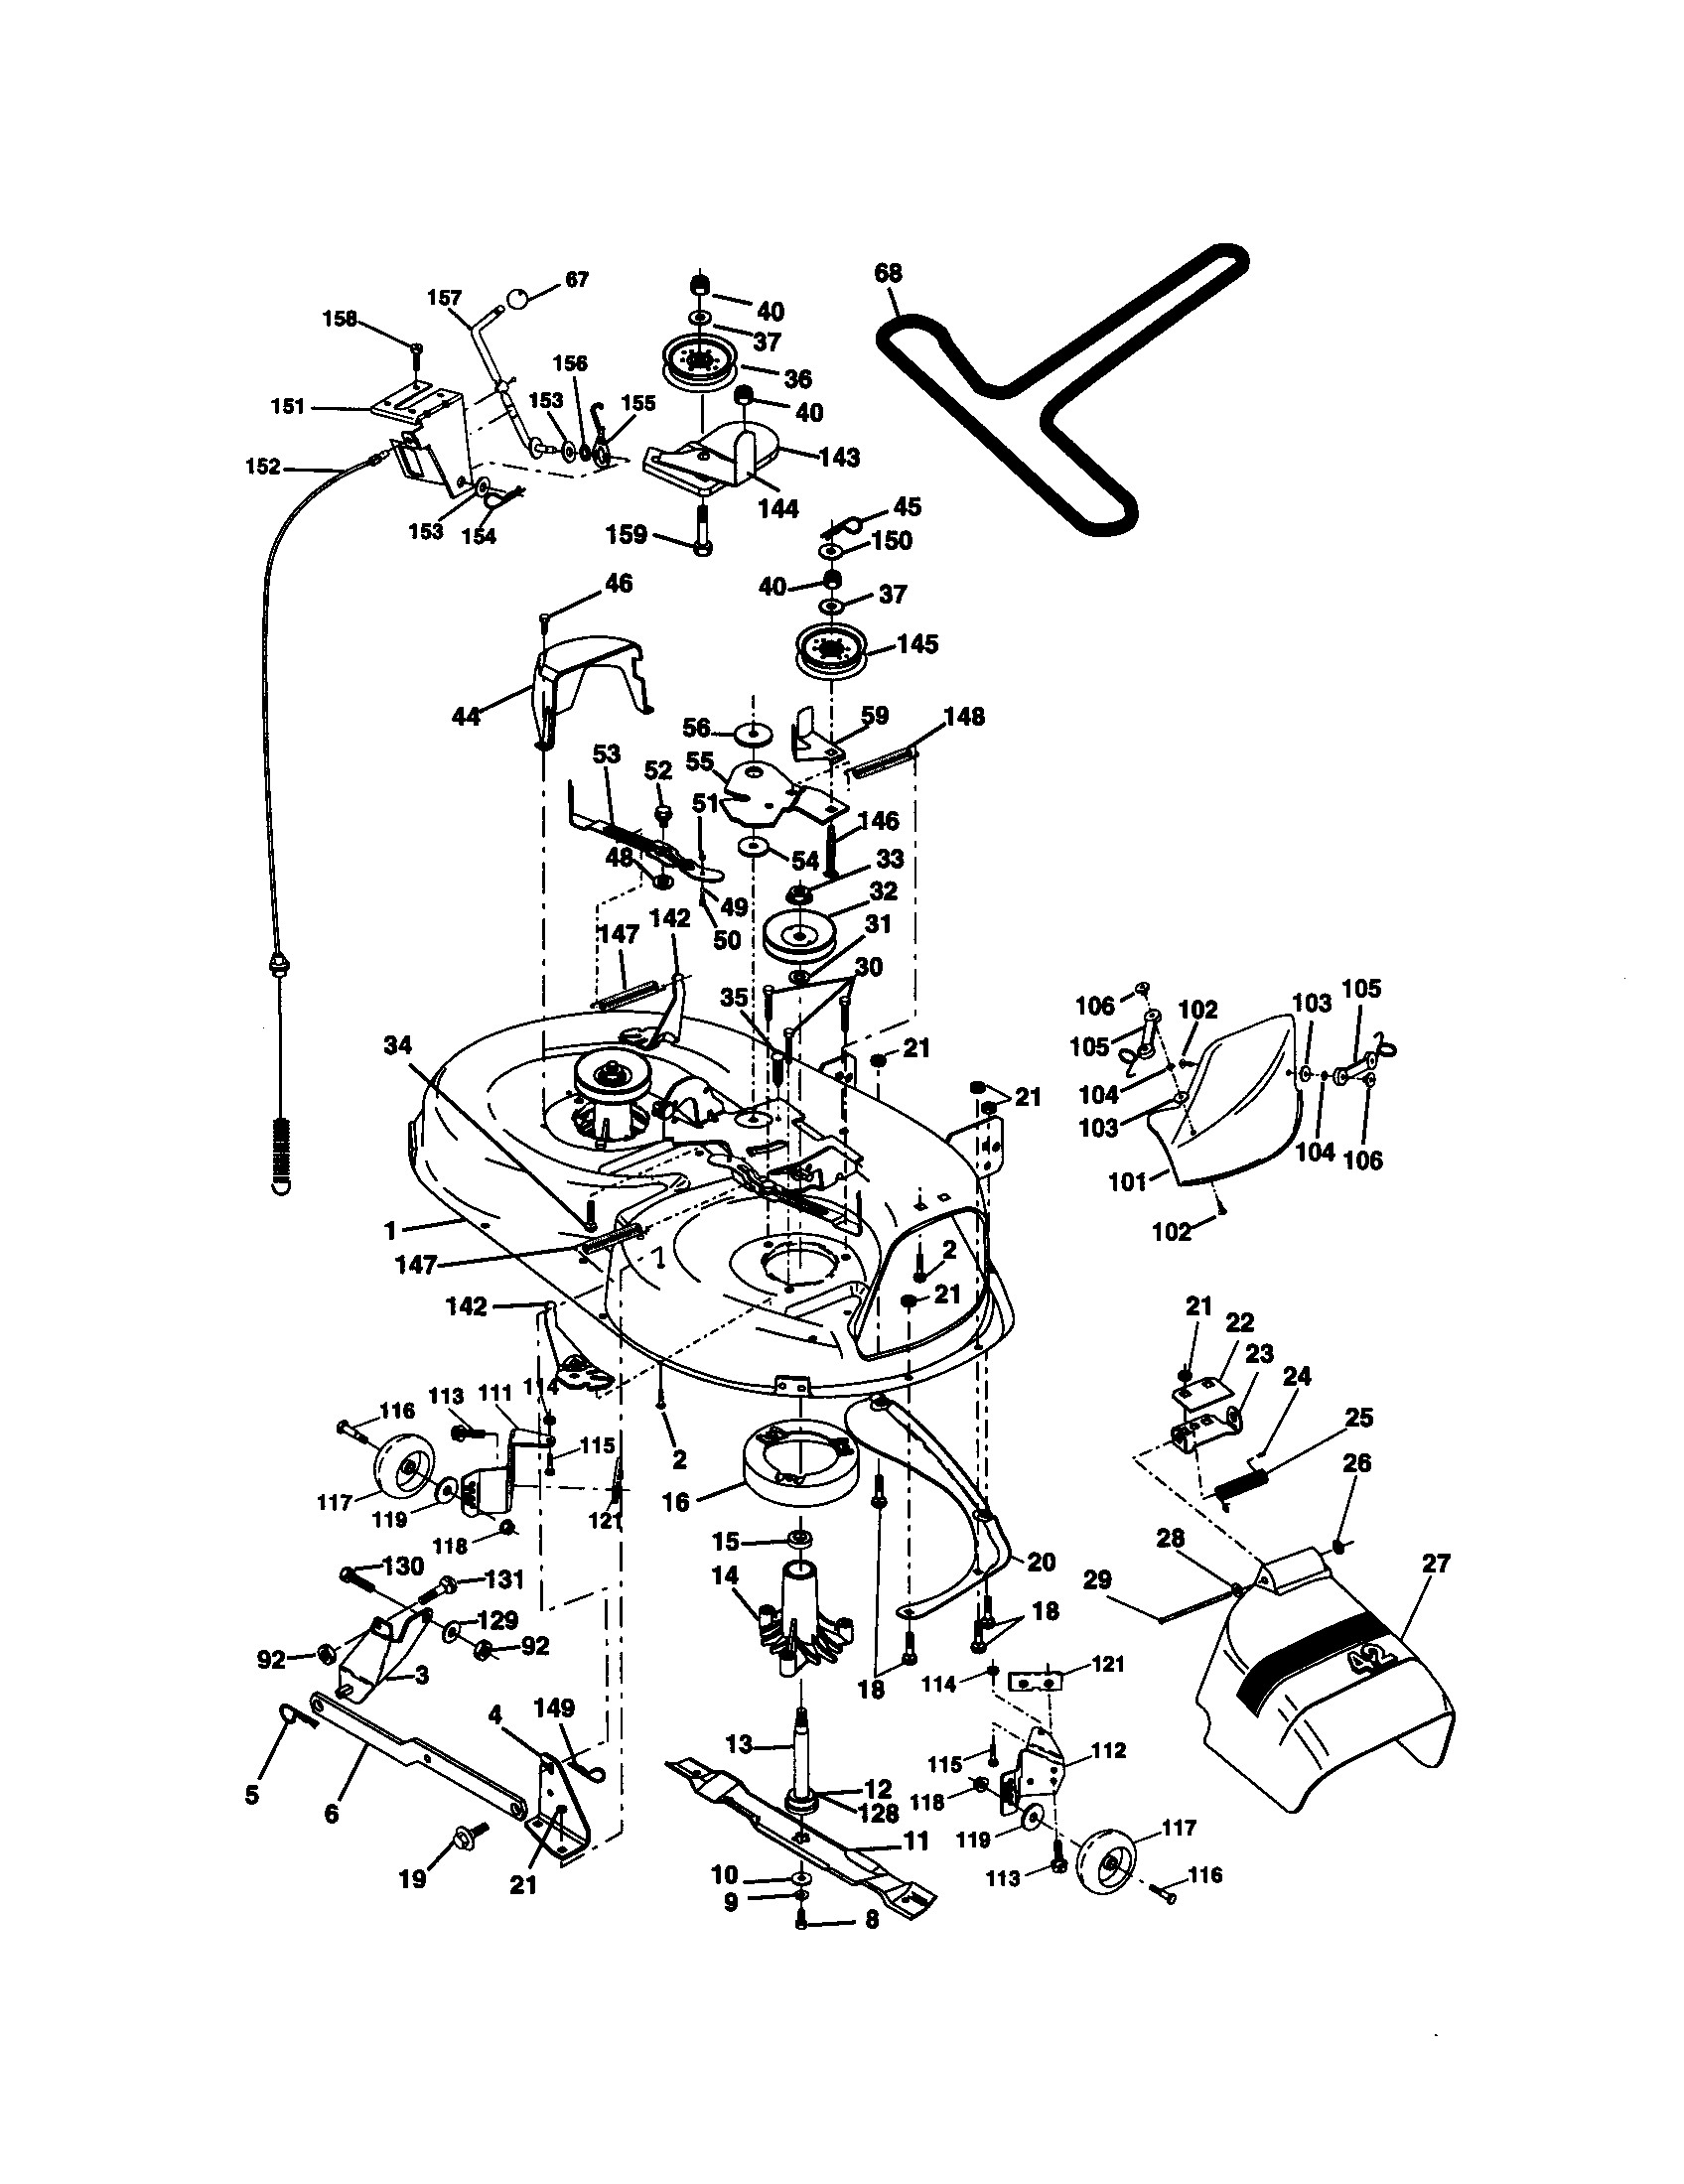 Lawn Mower Engine Diagram Rasenmher Zubehr 119 7845 Toro Kawasaki Diagrams Craftsman Model Tractor Genuine Parts Of